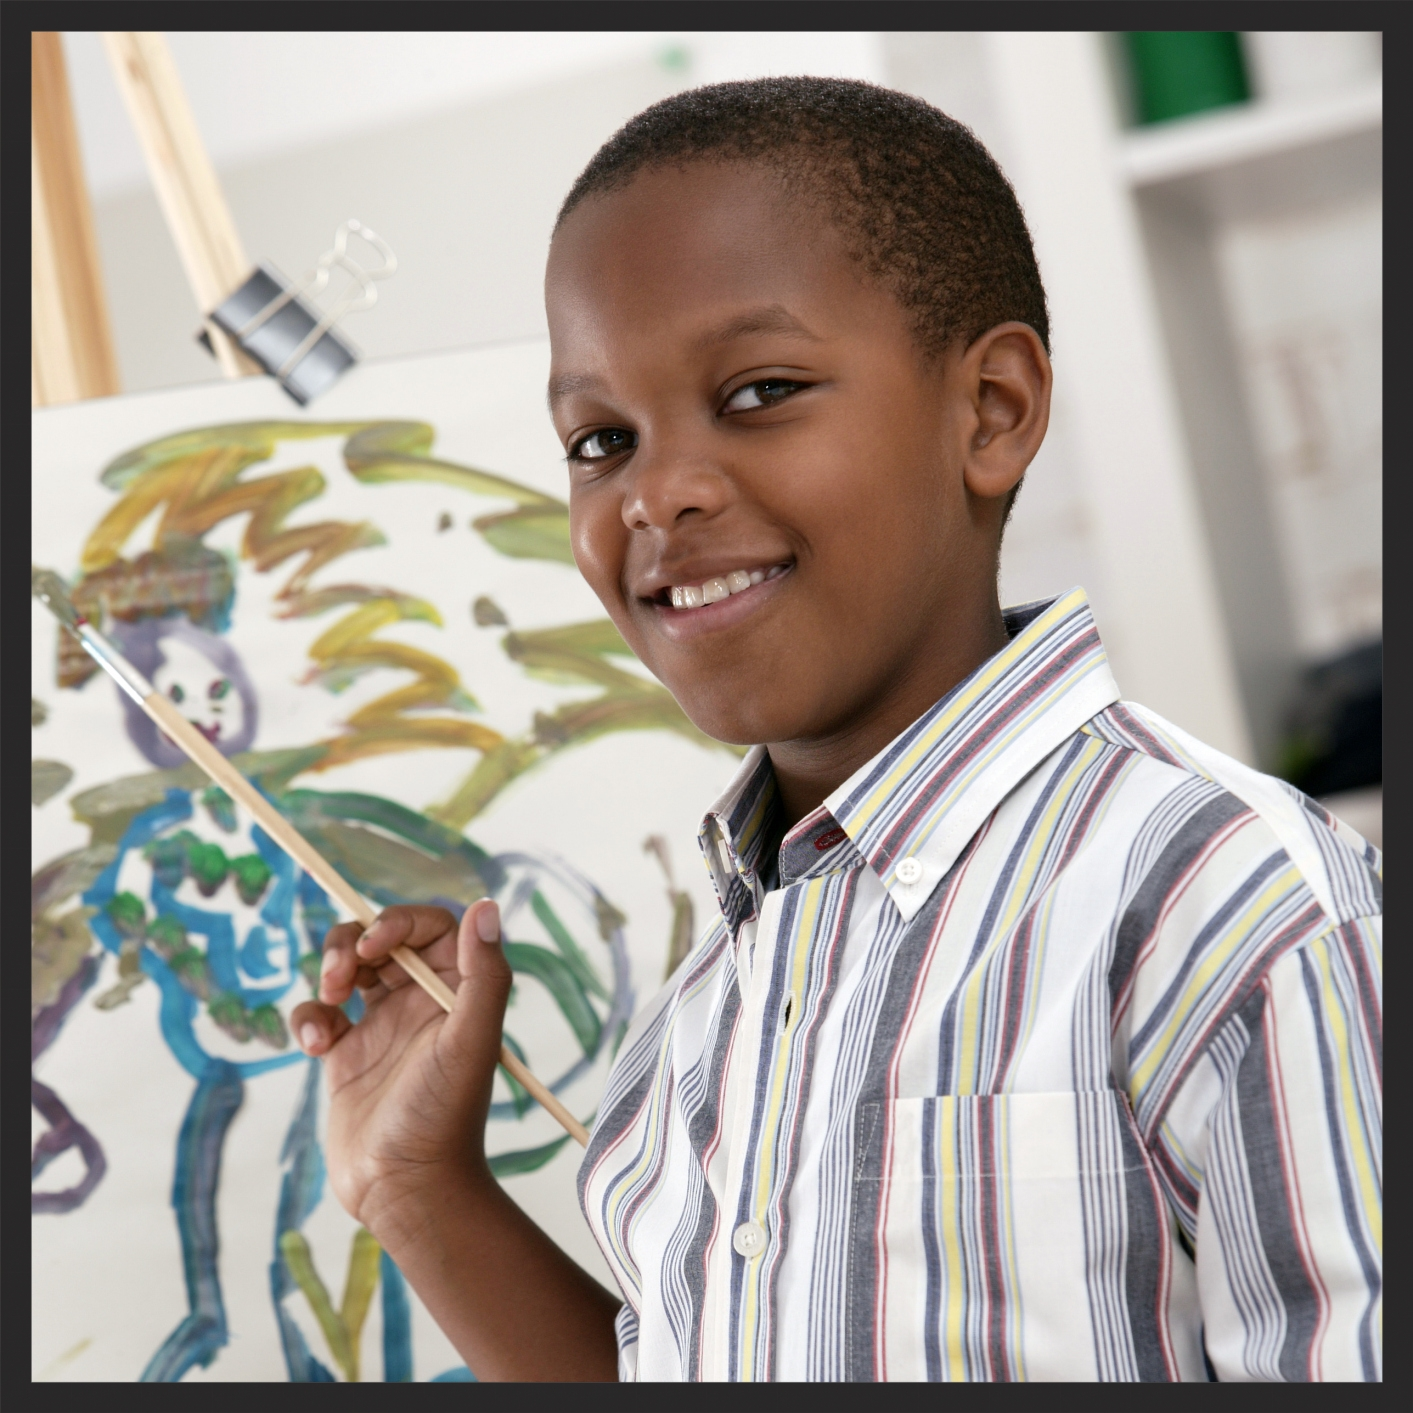 Click to find out more about Art Classes for 8-13 Year Olds